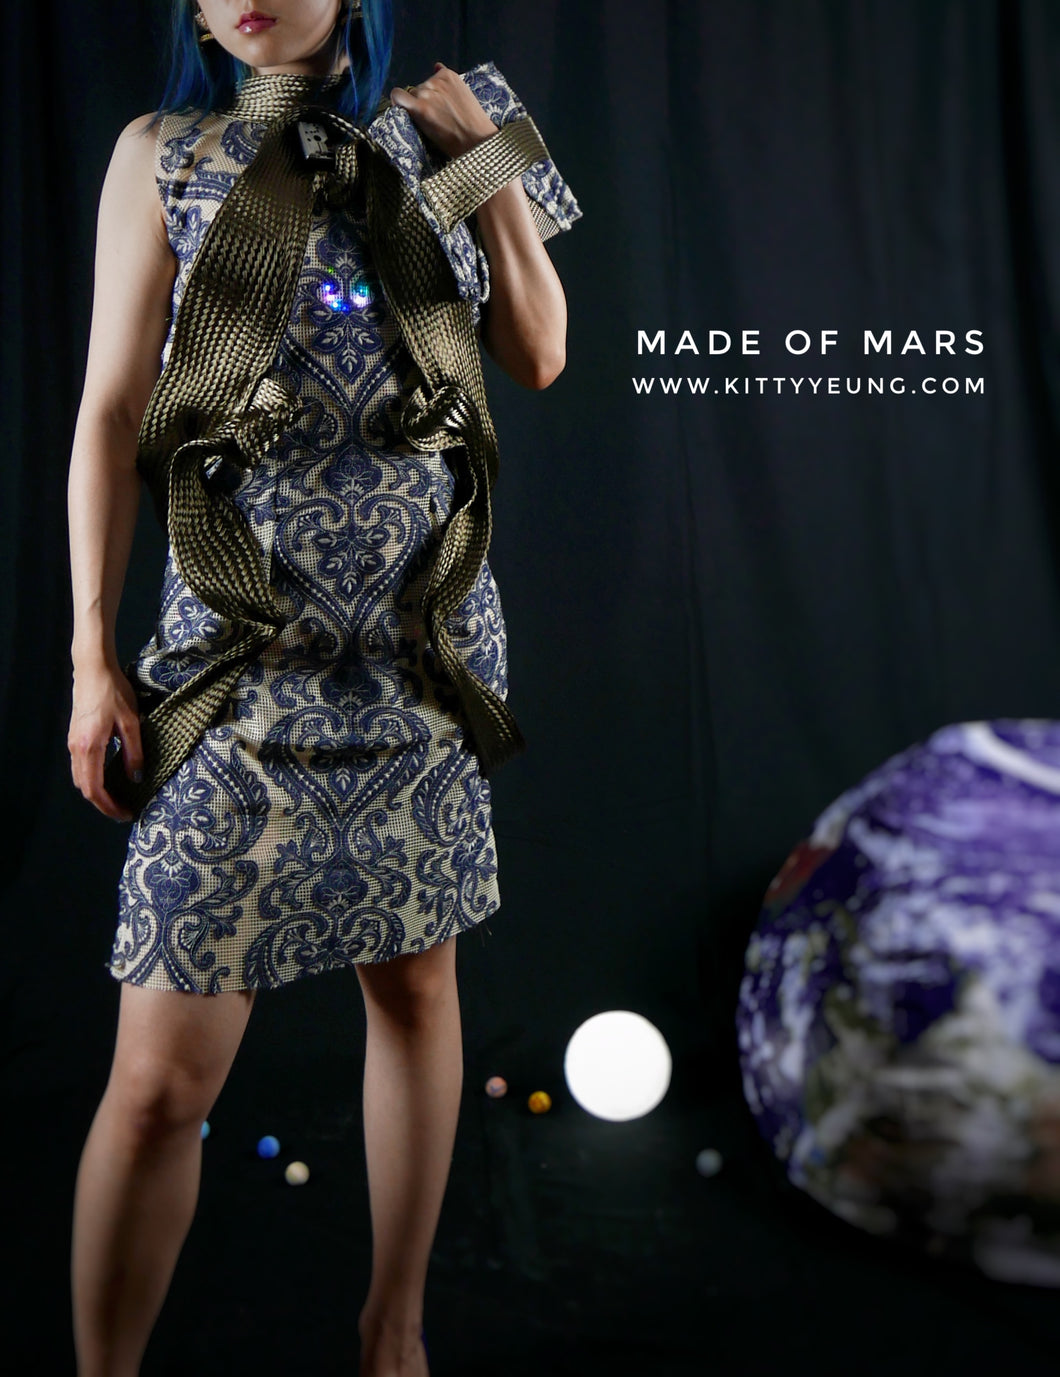 Made of Mars dress (free for makers)